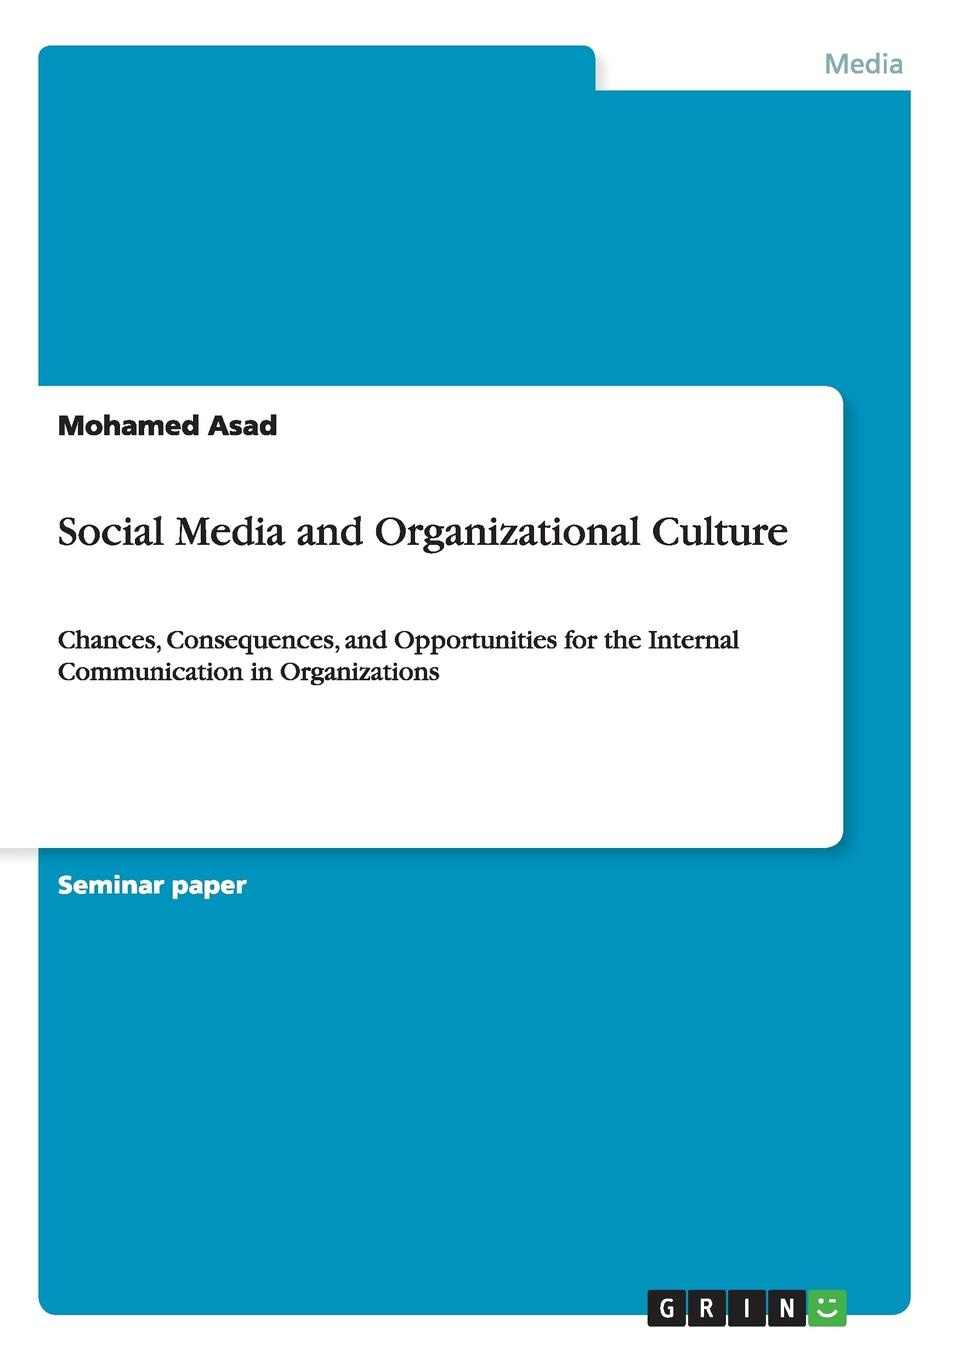 Mohamed Asad Social Media and Organizational Culture heather carpenter the talent development platform putting people first in social change organizations